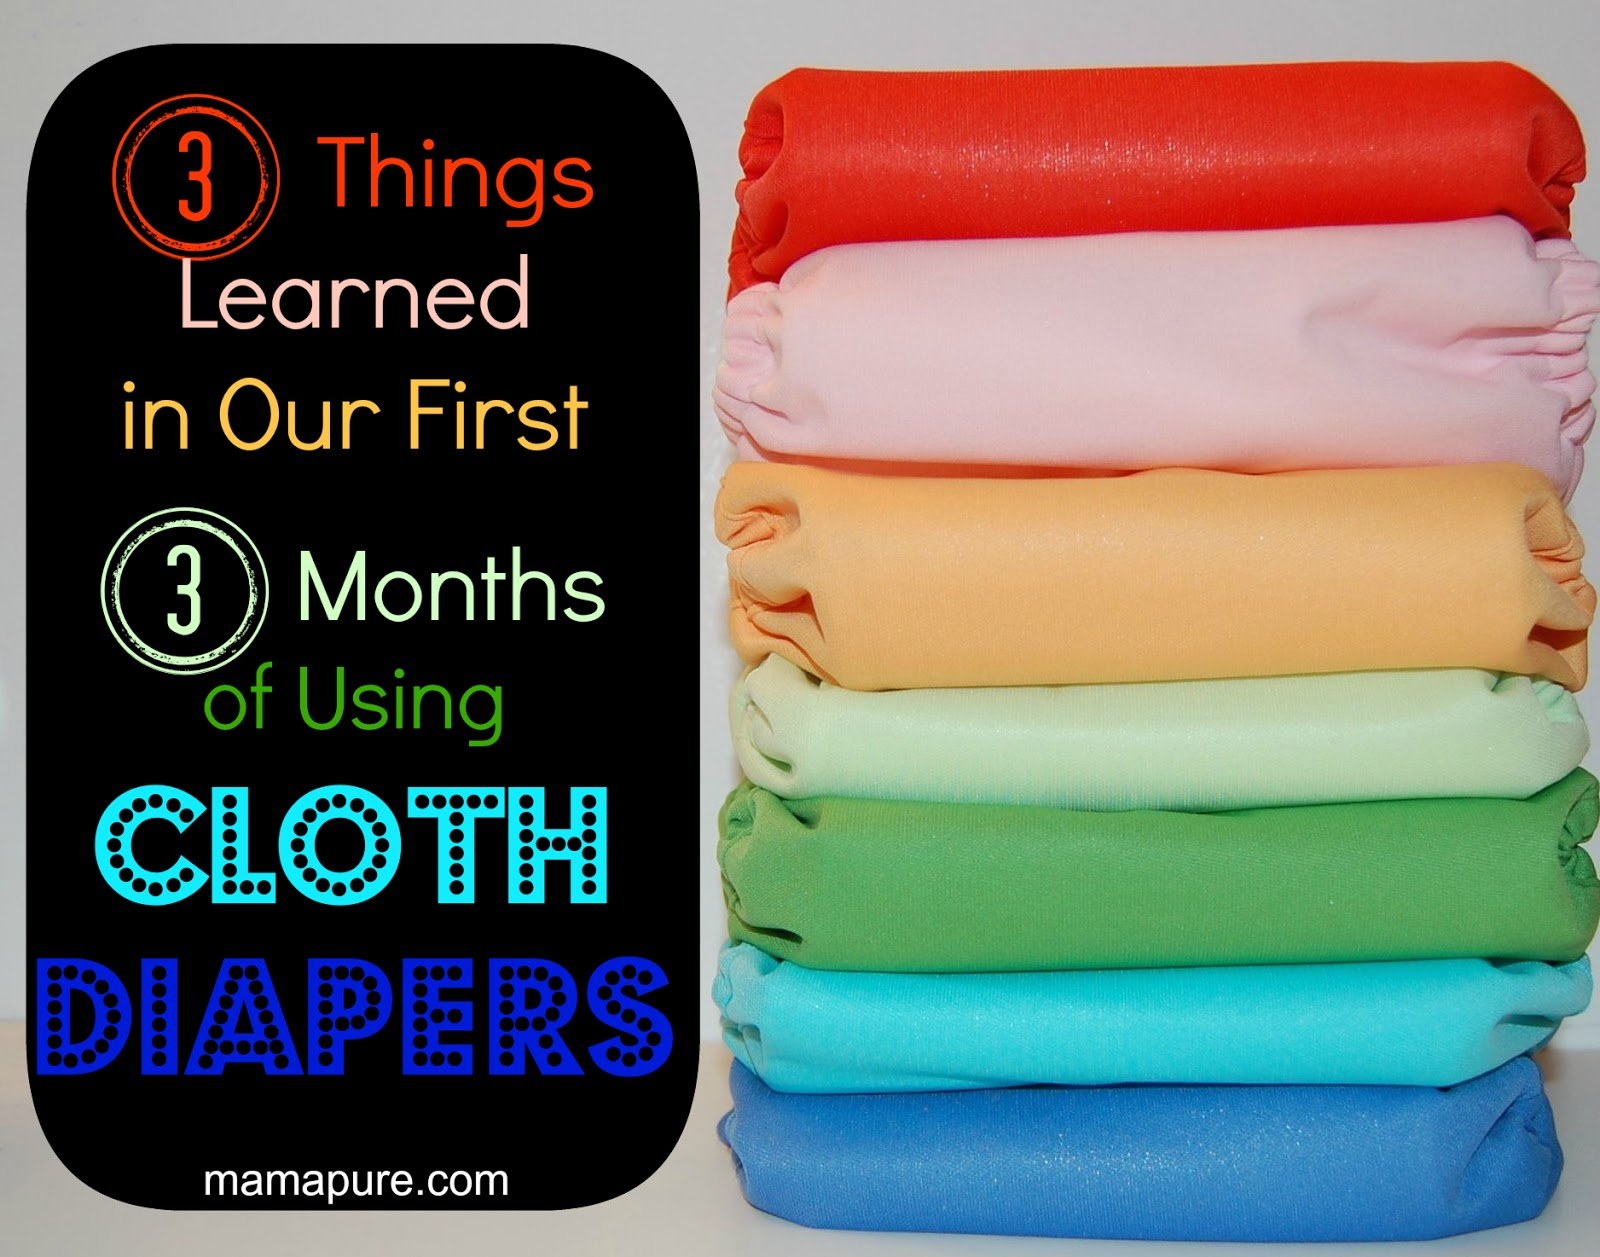 3 Things Learned in Our First 3 Months of Using Cloth Diapers